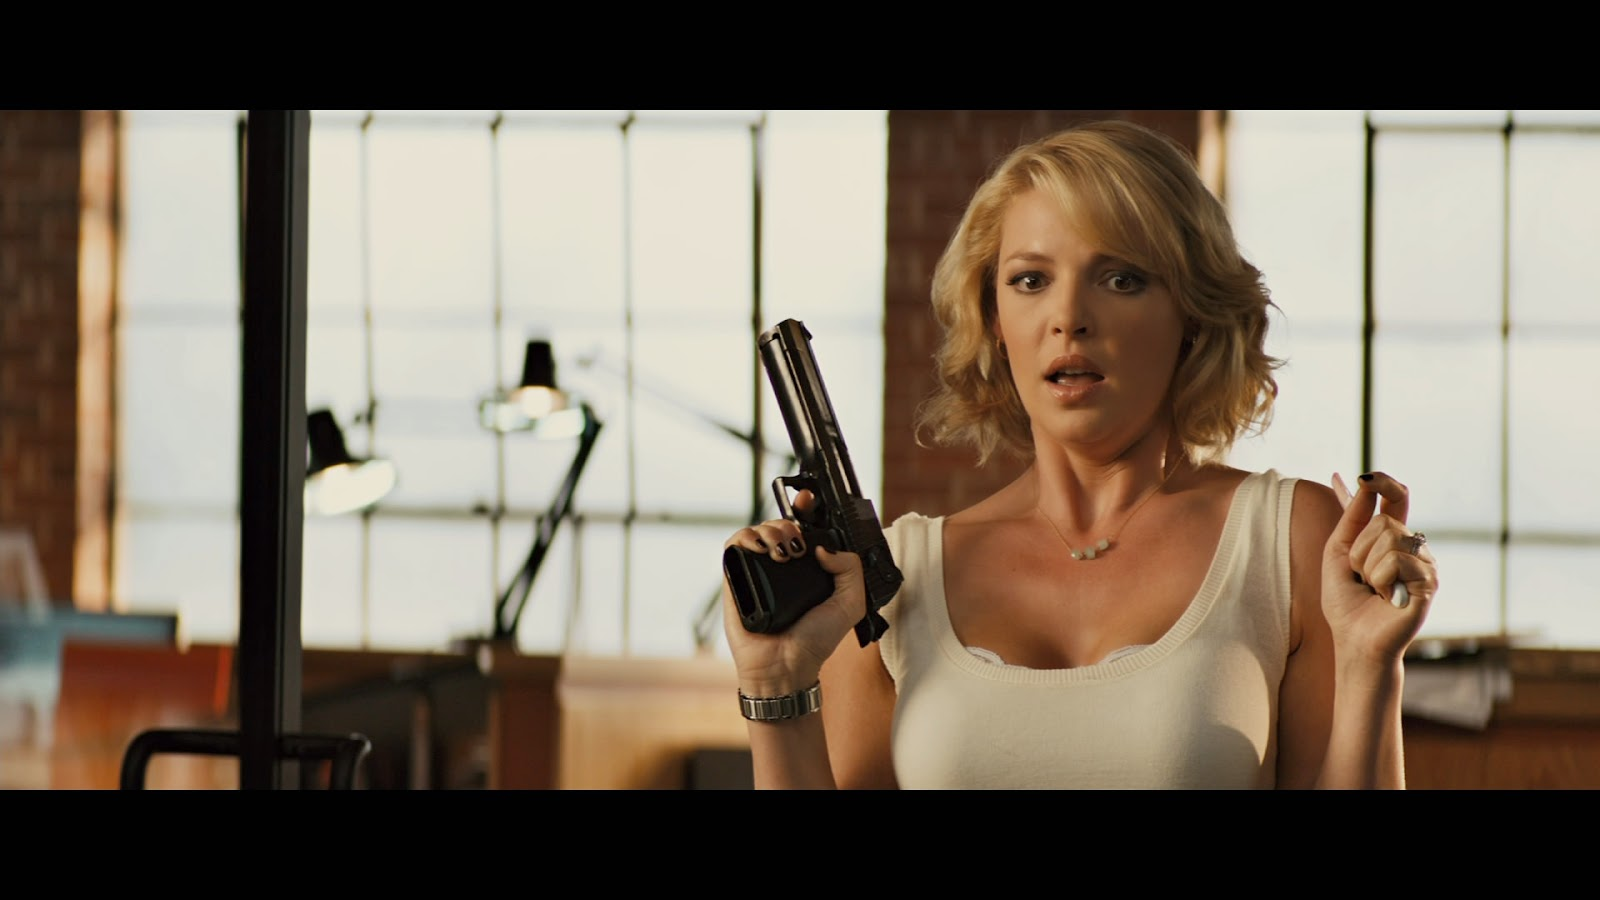 Killers:  Ashton Kutcher, Katherine Heigl | A Constantly Racing Mind